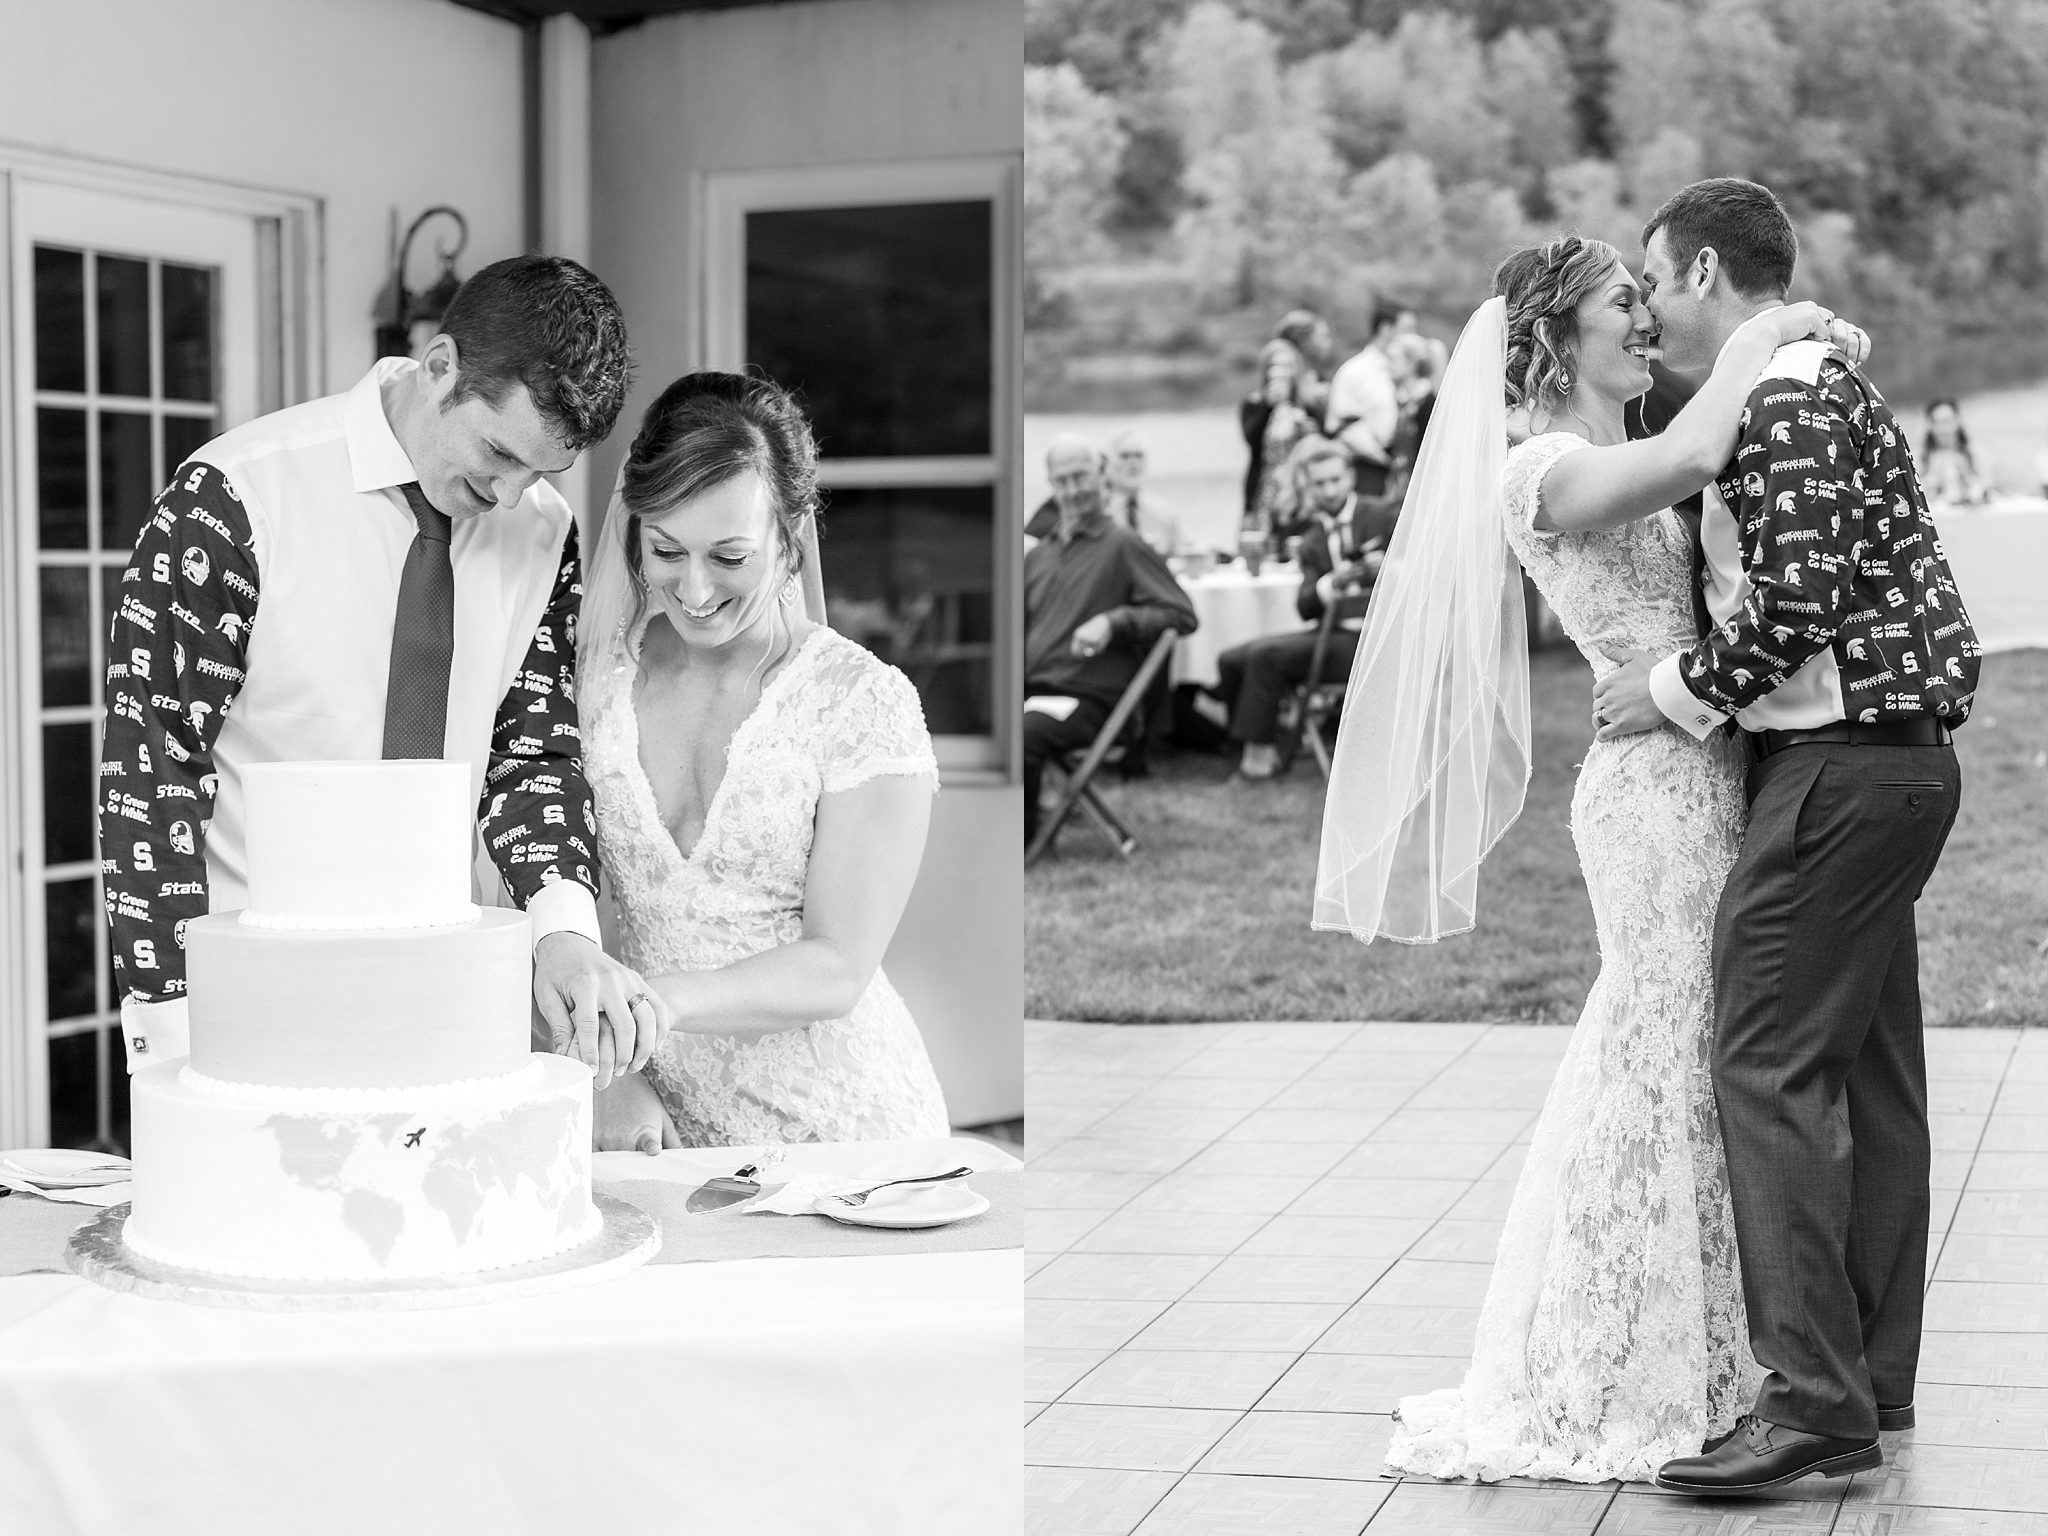 romantic-artful-candid-wedding-photos-in-detroit-lansing-ann-arbor-northern-michigan-and-chicago-by-courtney-carolyn-photography_0016.jpg